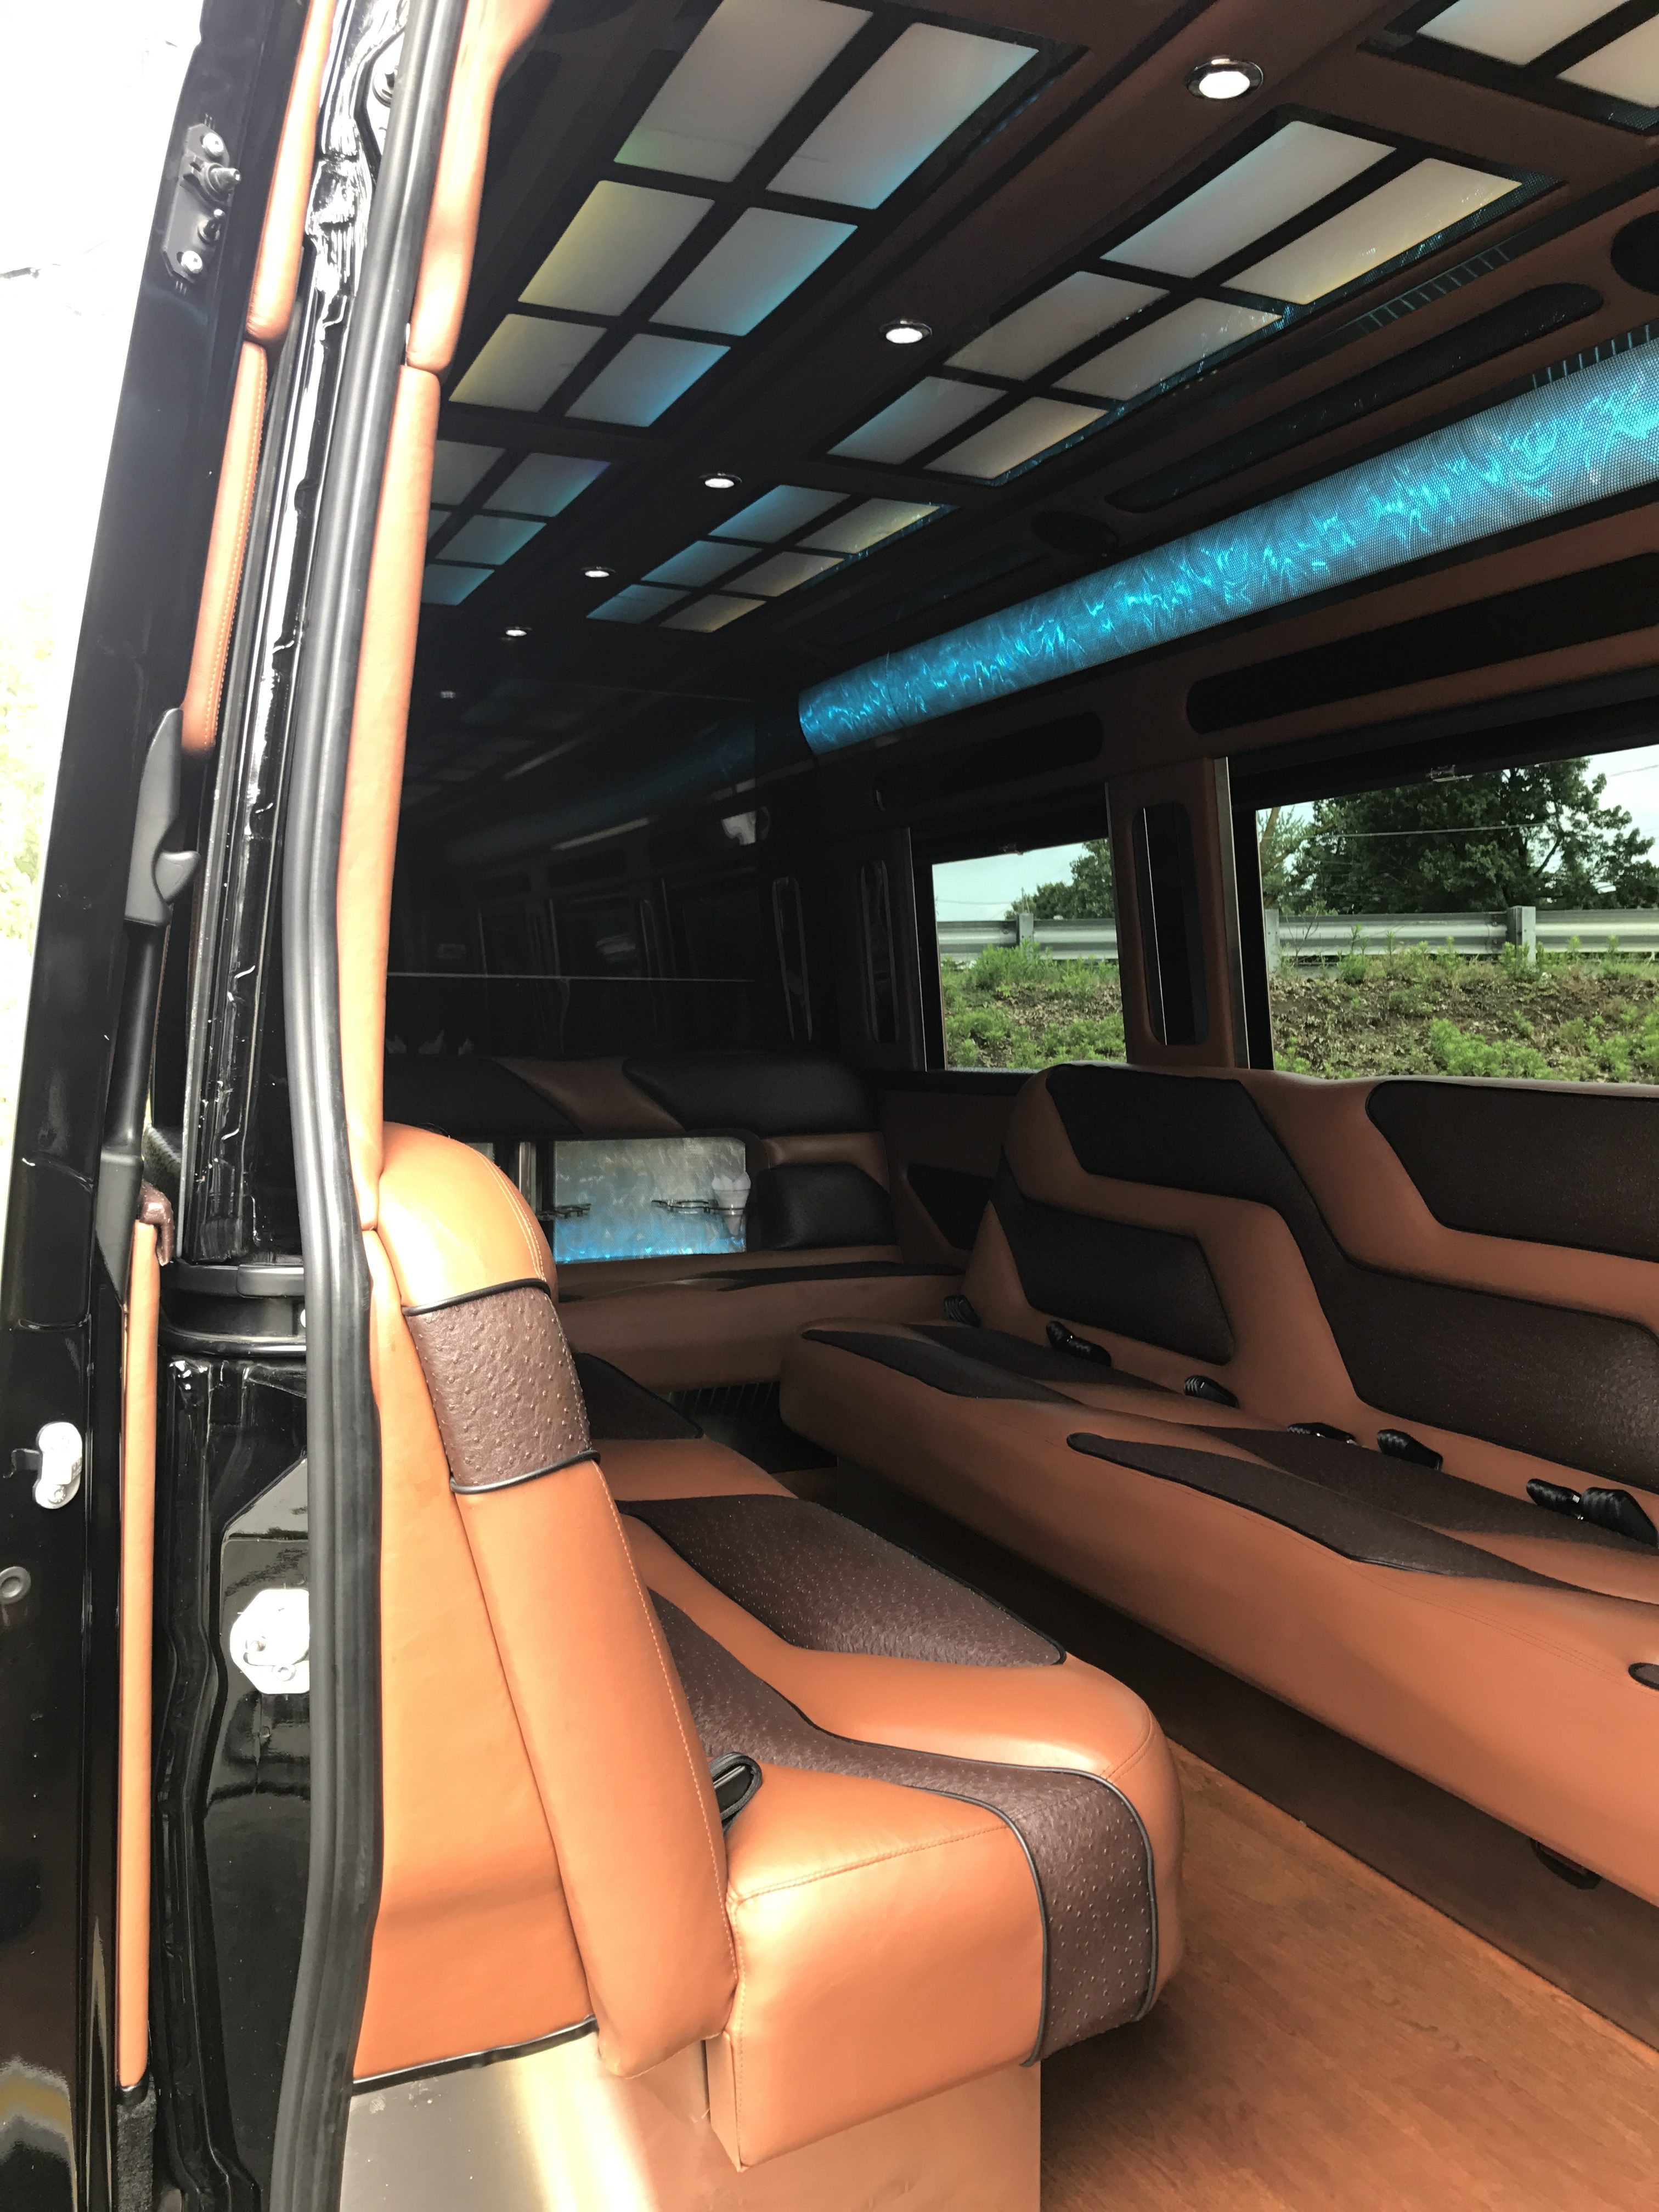 Mercedes benz sprinter 15 passenger party bus 3 nj limo for Mercedes benz sprinter 15 passenger